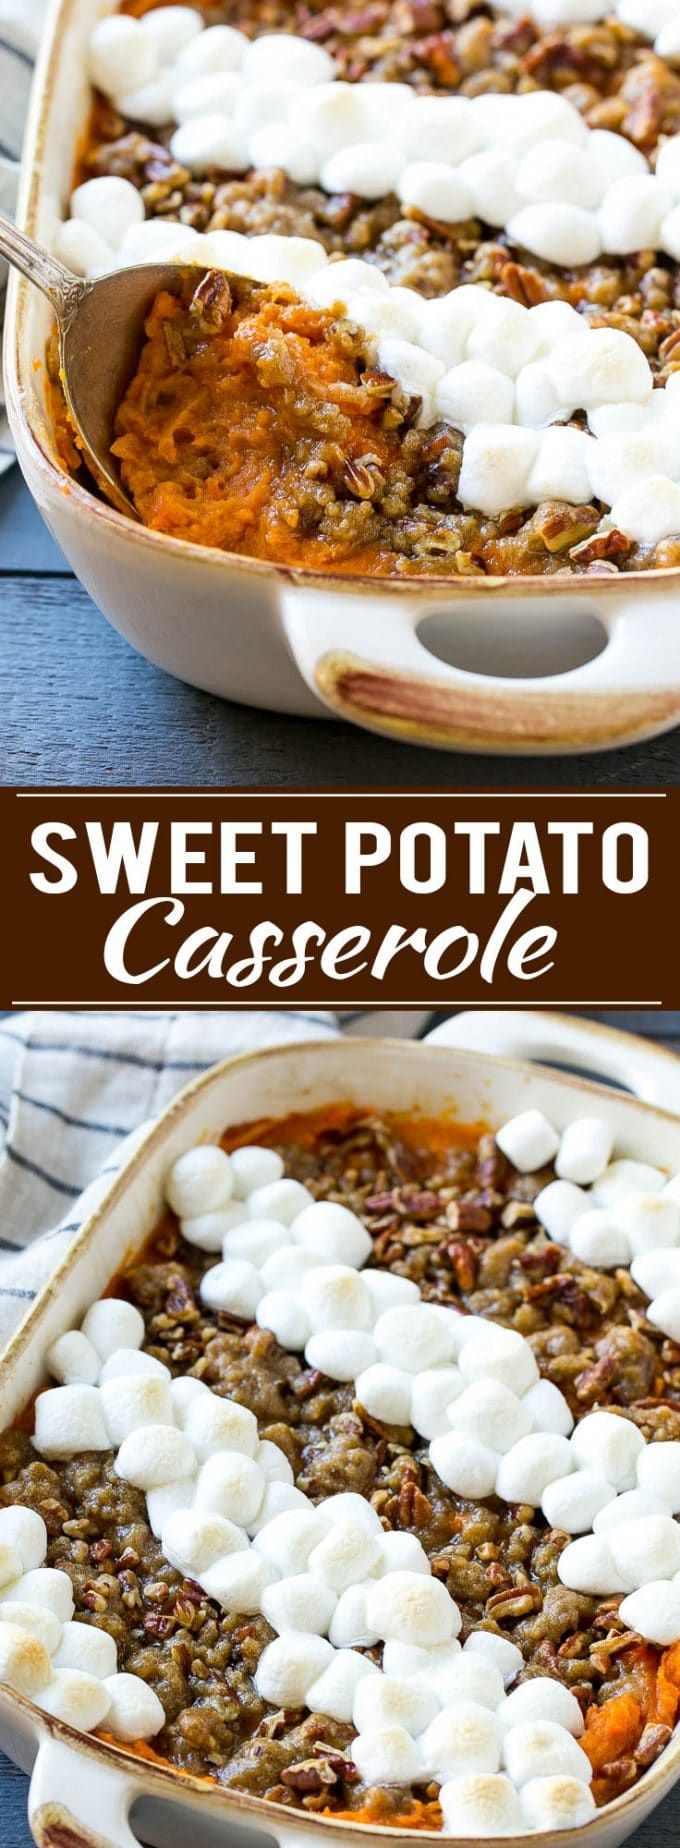 Sweet Potato Casserole with Marshmallows Recipe | Sweet Potato Recipe | Side Dish Recipe | Sweet Potato Casserole | Thanksgiving Recipe